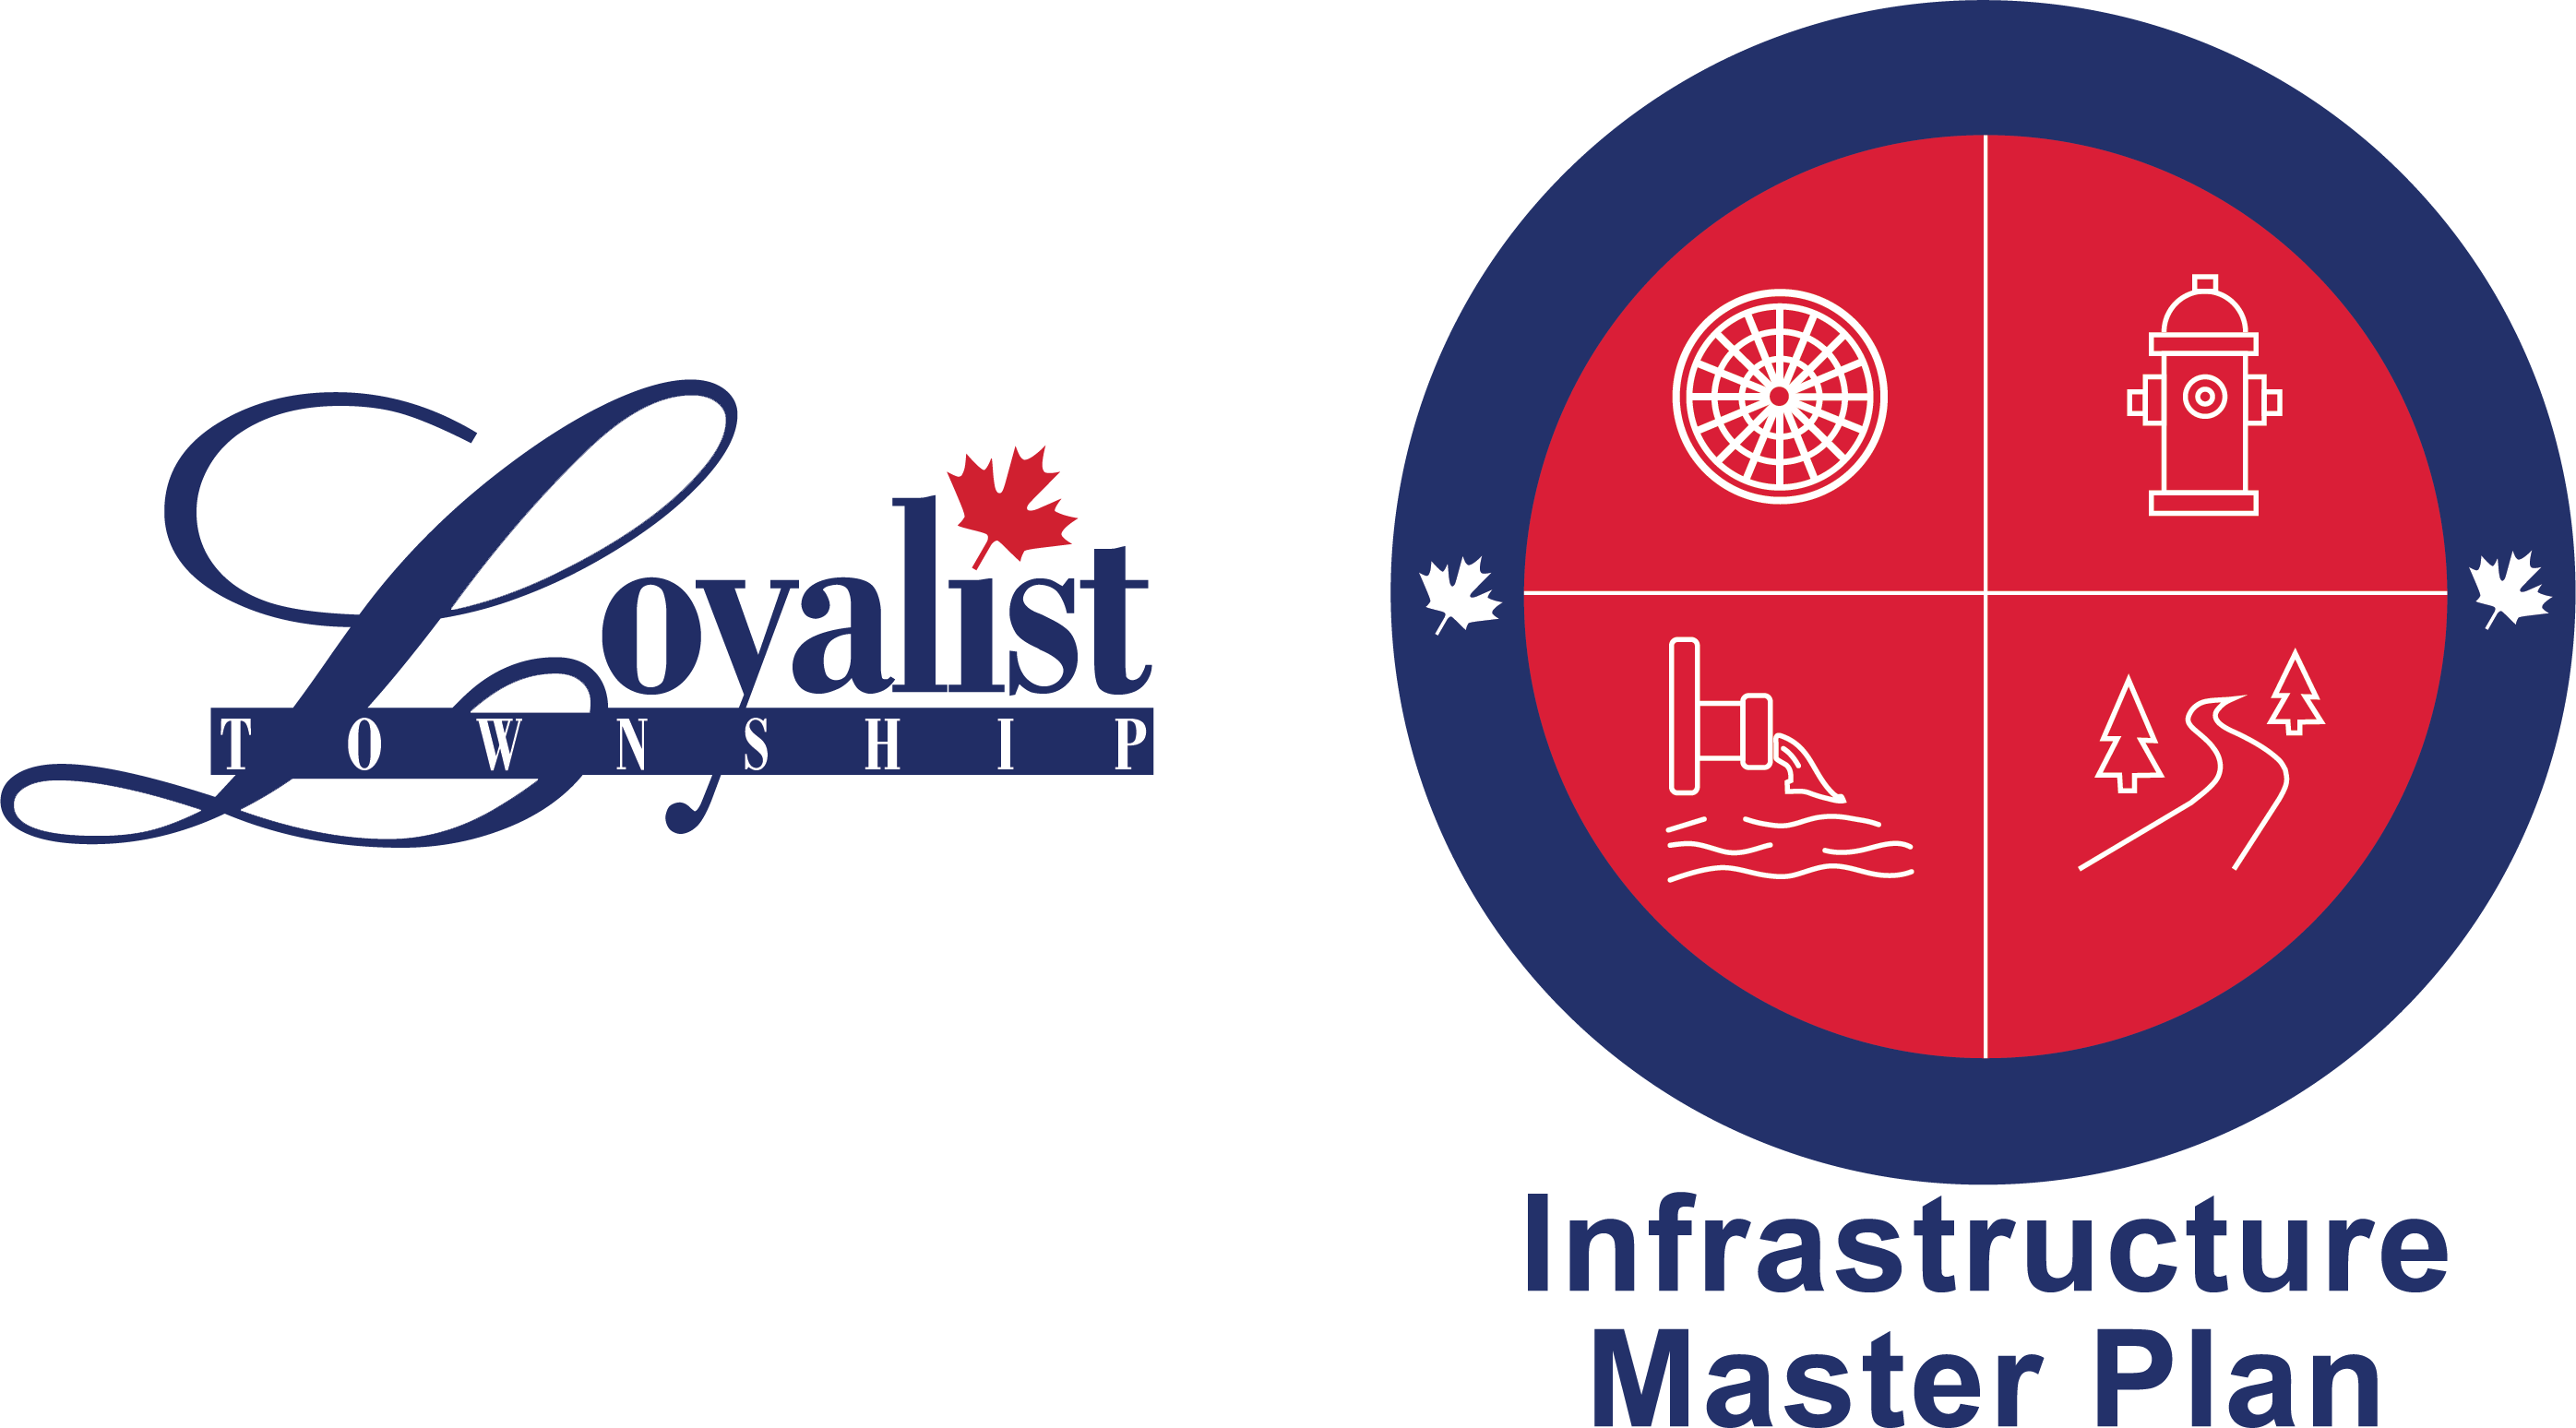 Infrastructure Master Plan Logo and Loyalist Township Logo side-by-side